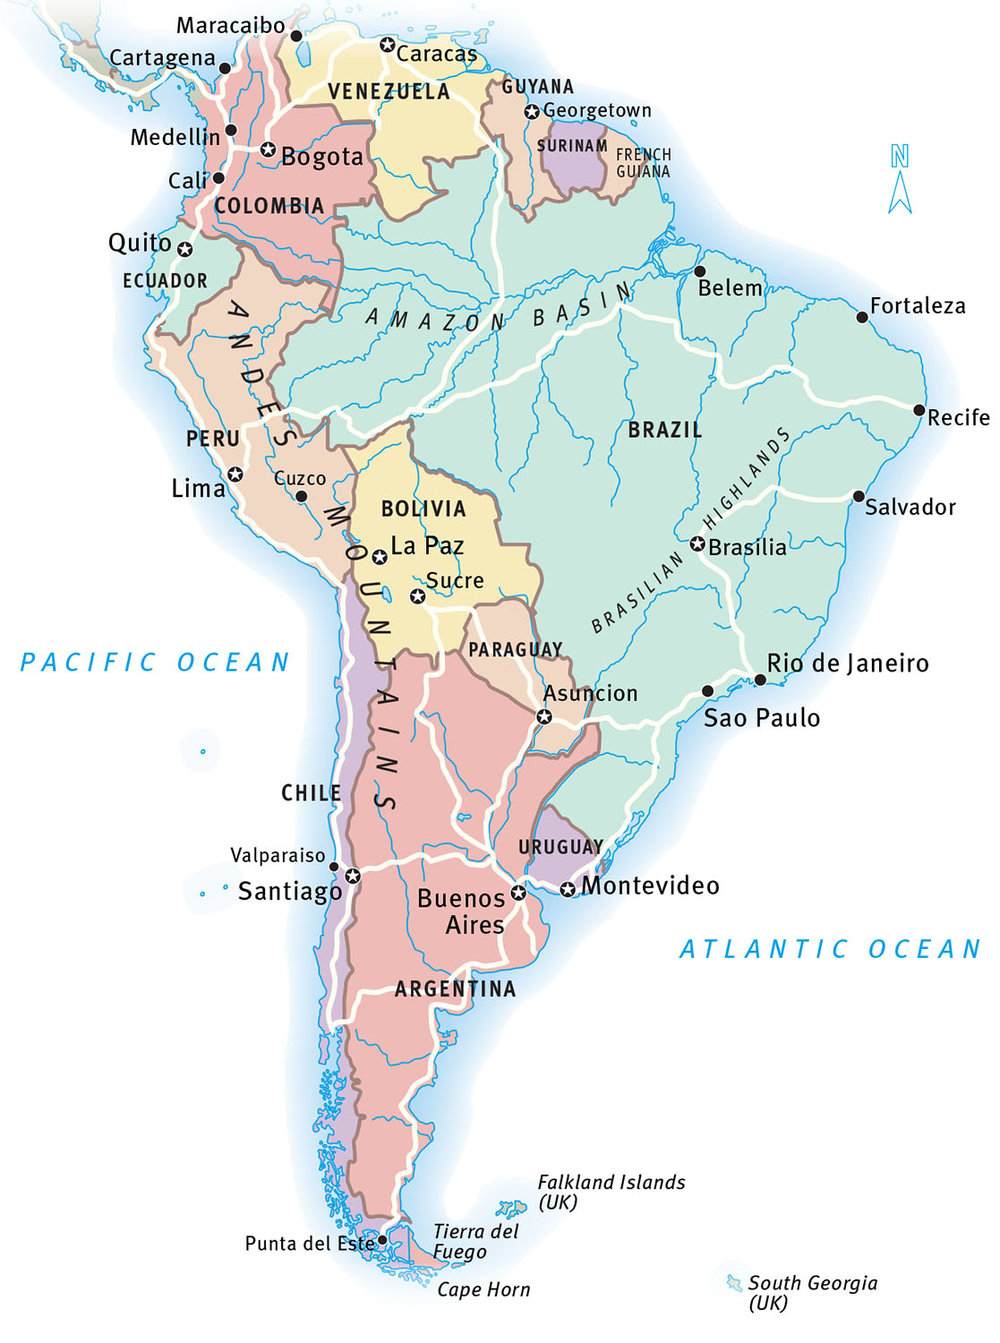 Map of South America for the tour operator   Travel Impressions.    Map copyright © David Lindroth Inc. These maps appear in their printed brochures and online.